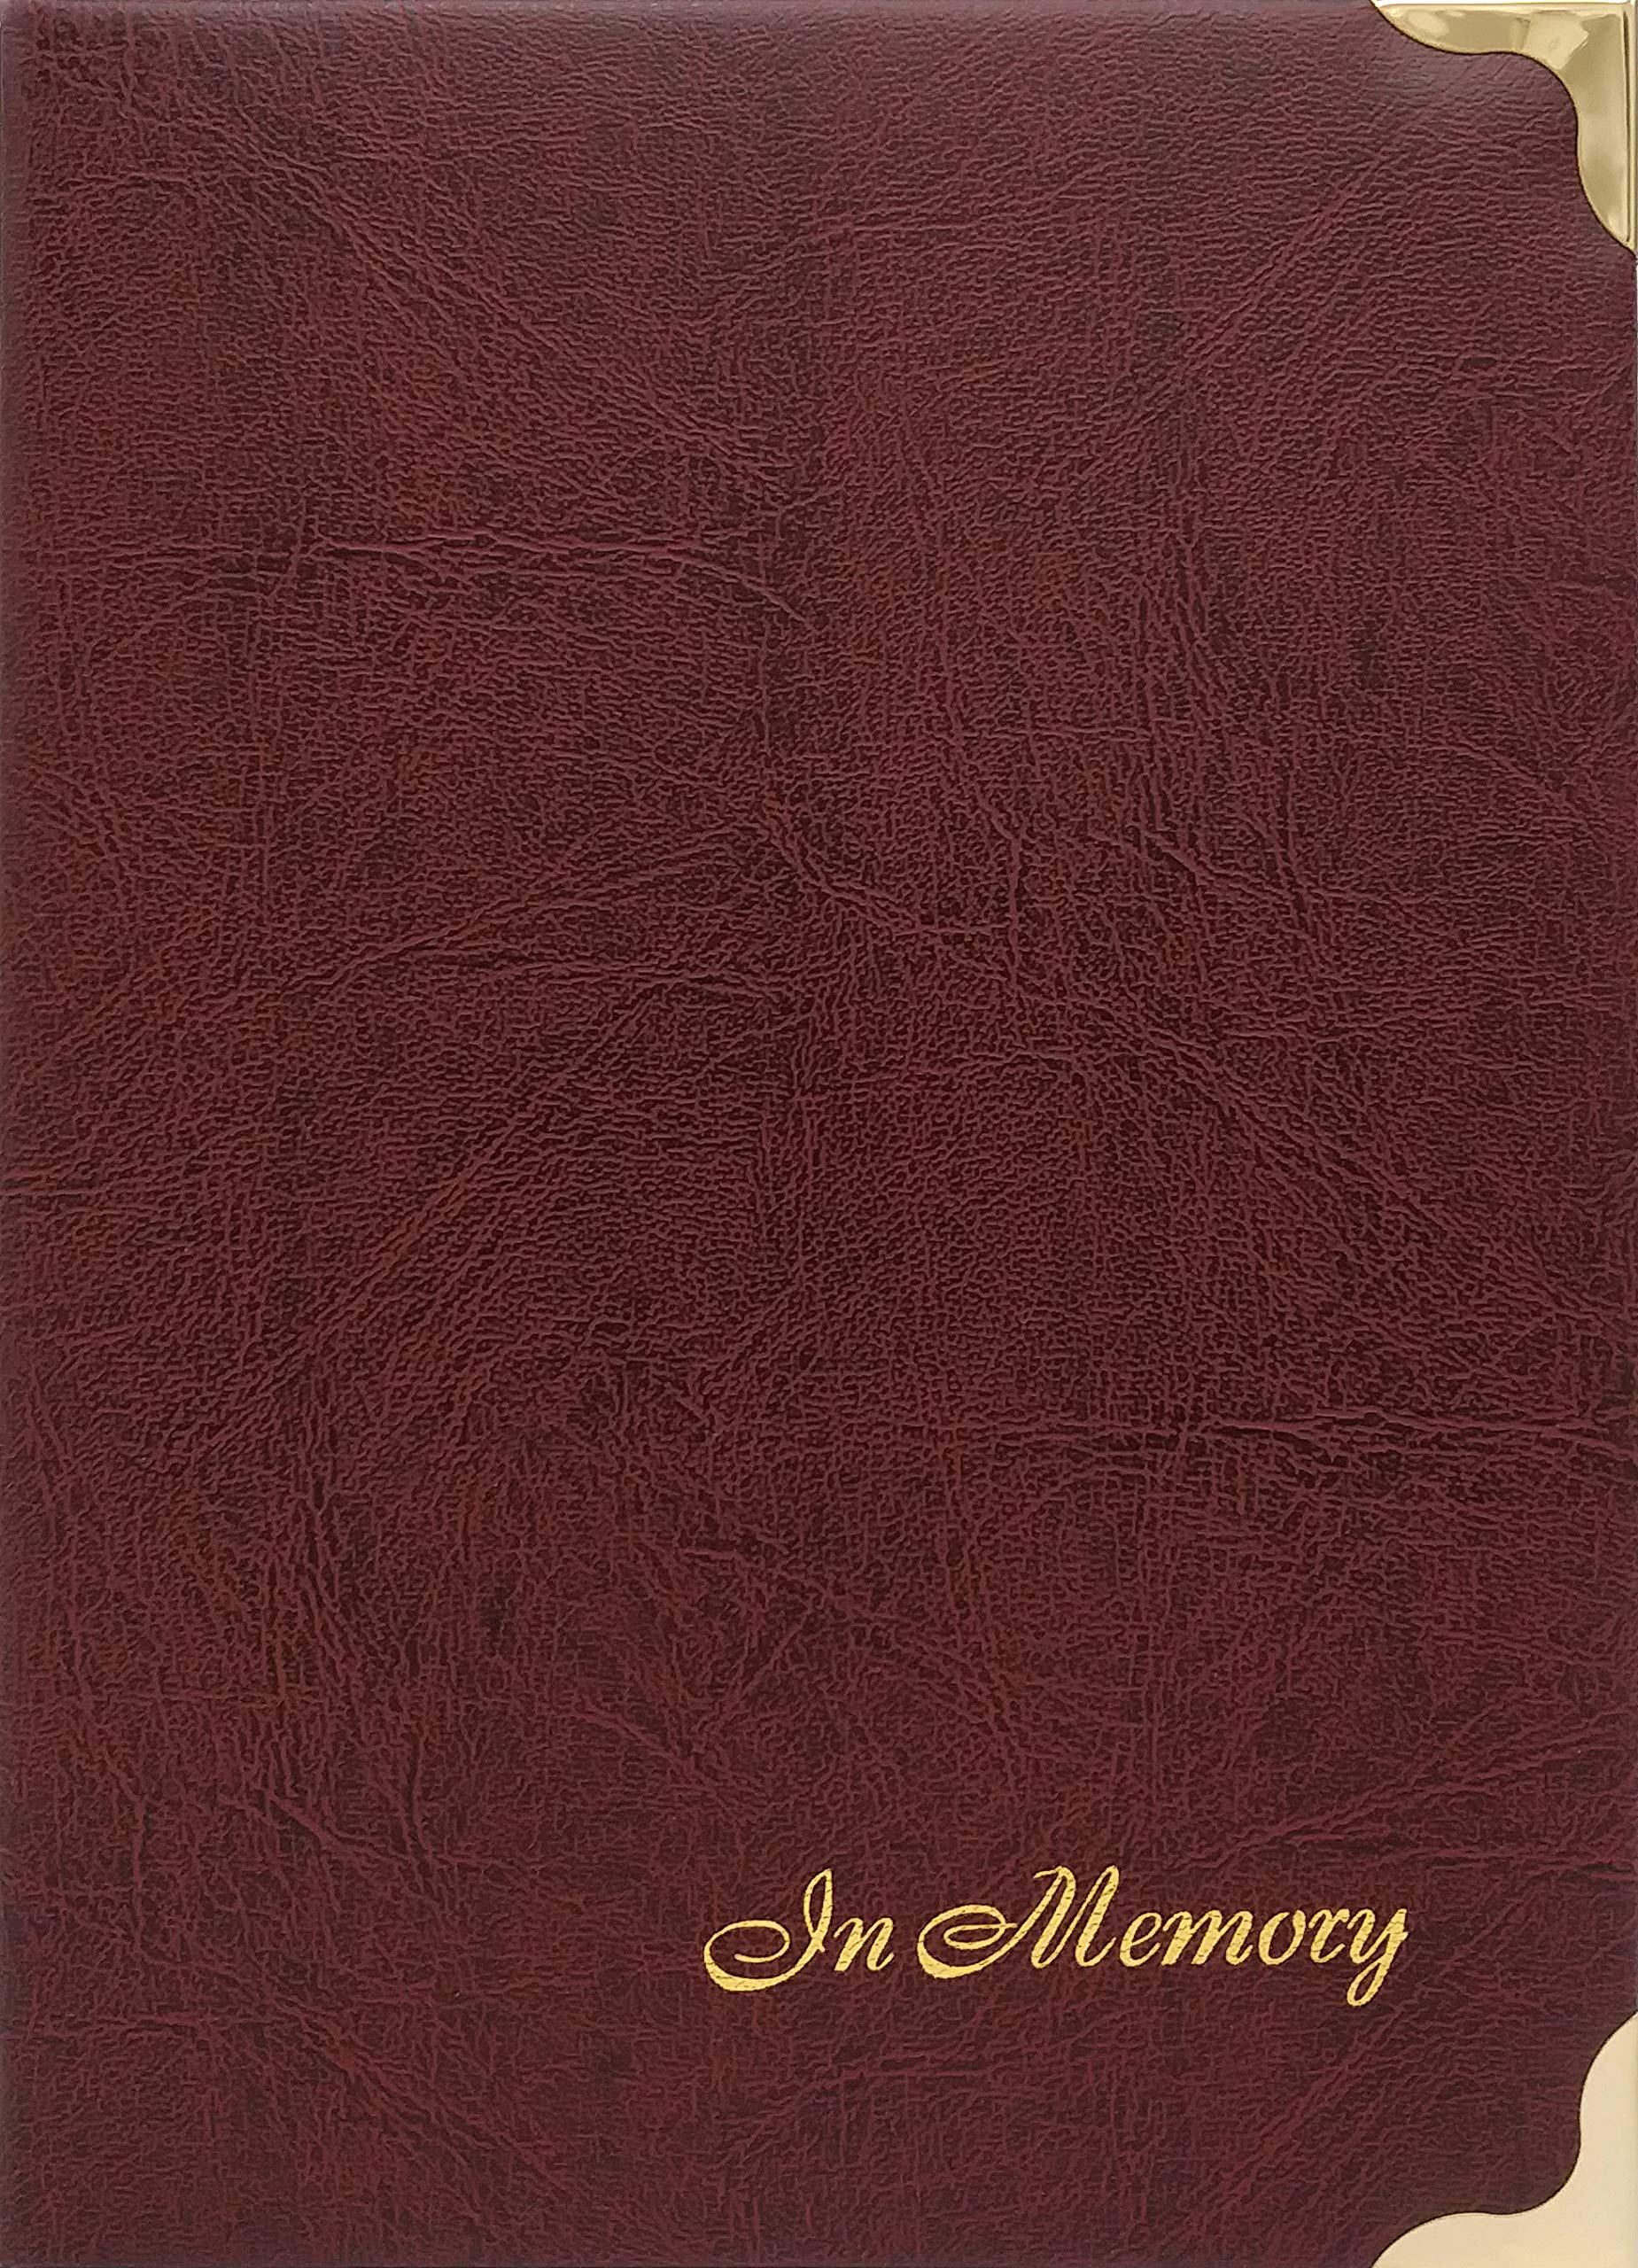 At Ease Specialties in Memory Funeral Guest Book, Visitor Registration, Condolence & Memorial Book, 7.25x10 Inches, Brass Ring Binder (45) Removable Pages - Burgundy by At Ease Specialties